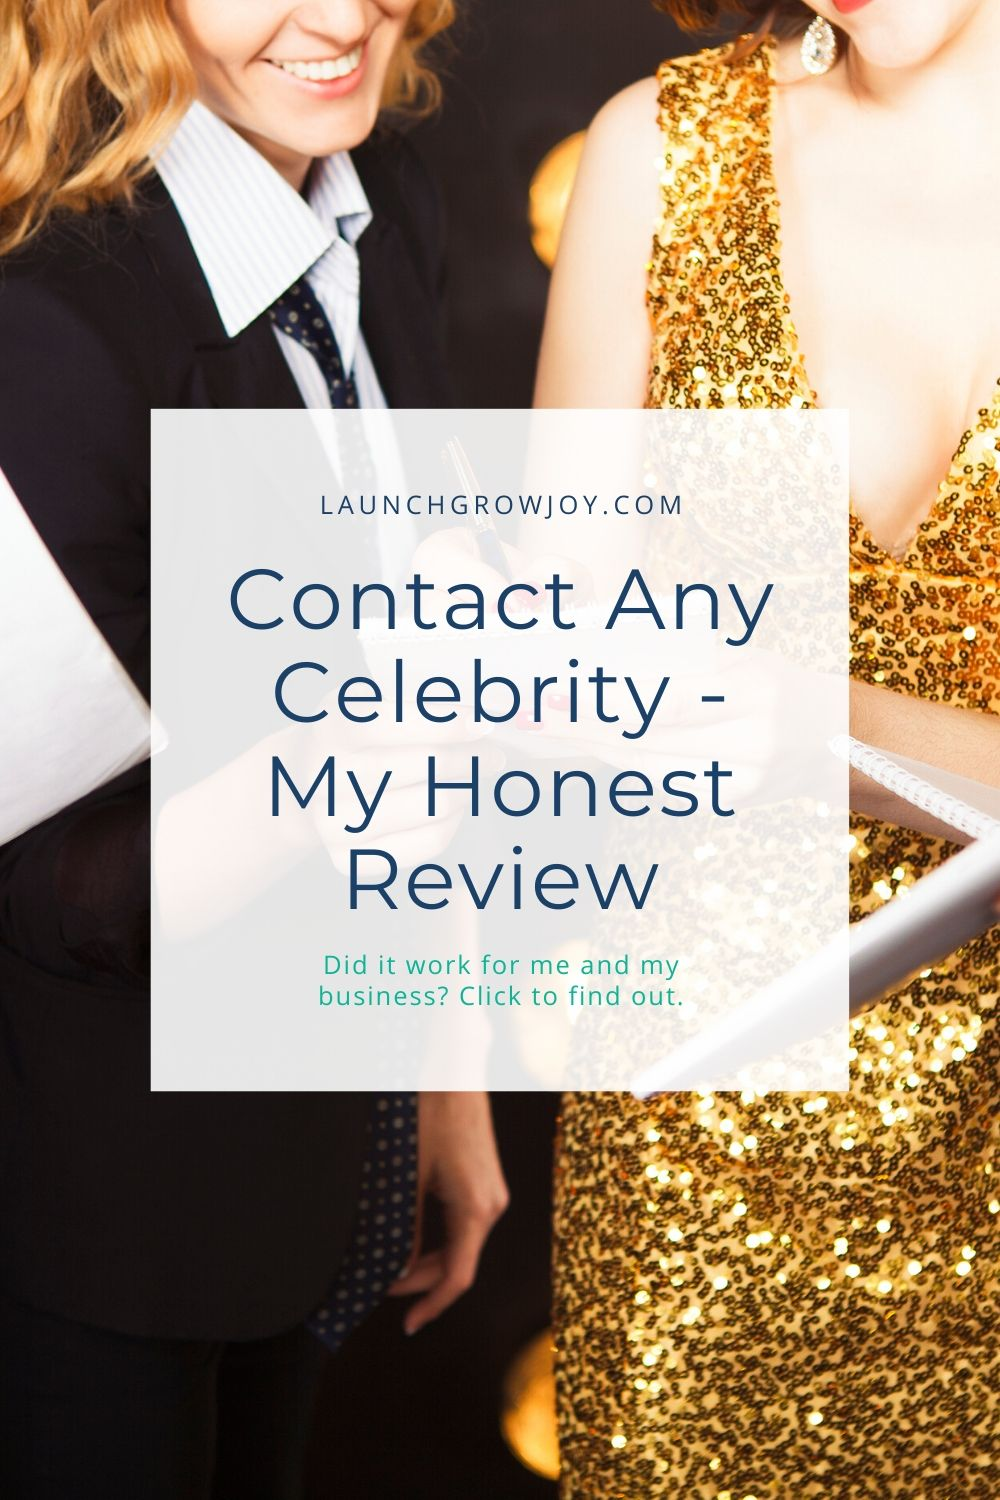 Contact any celebrity review